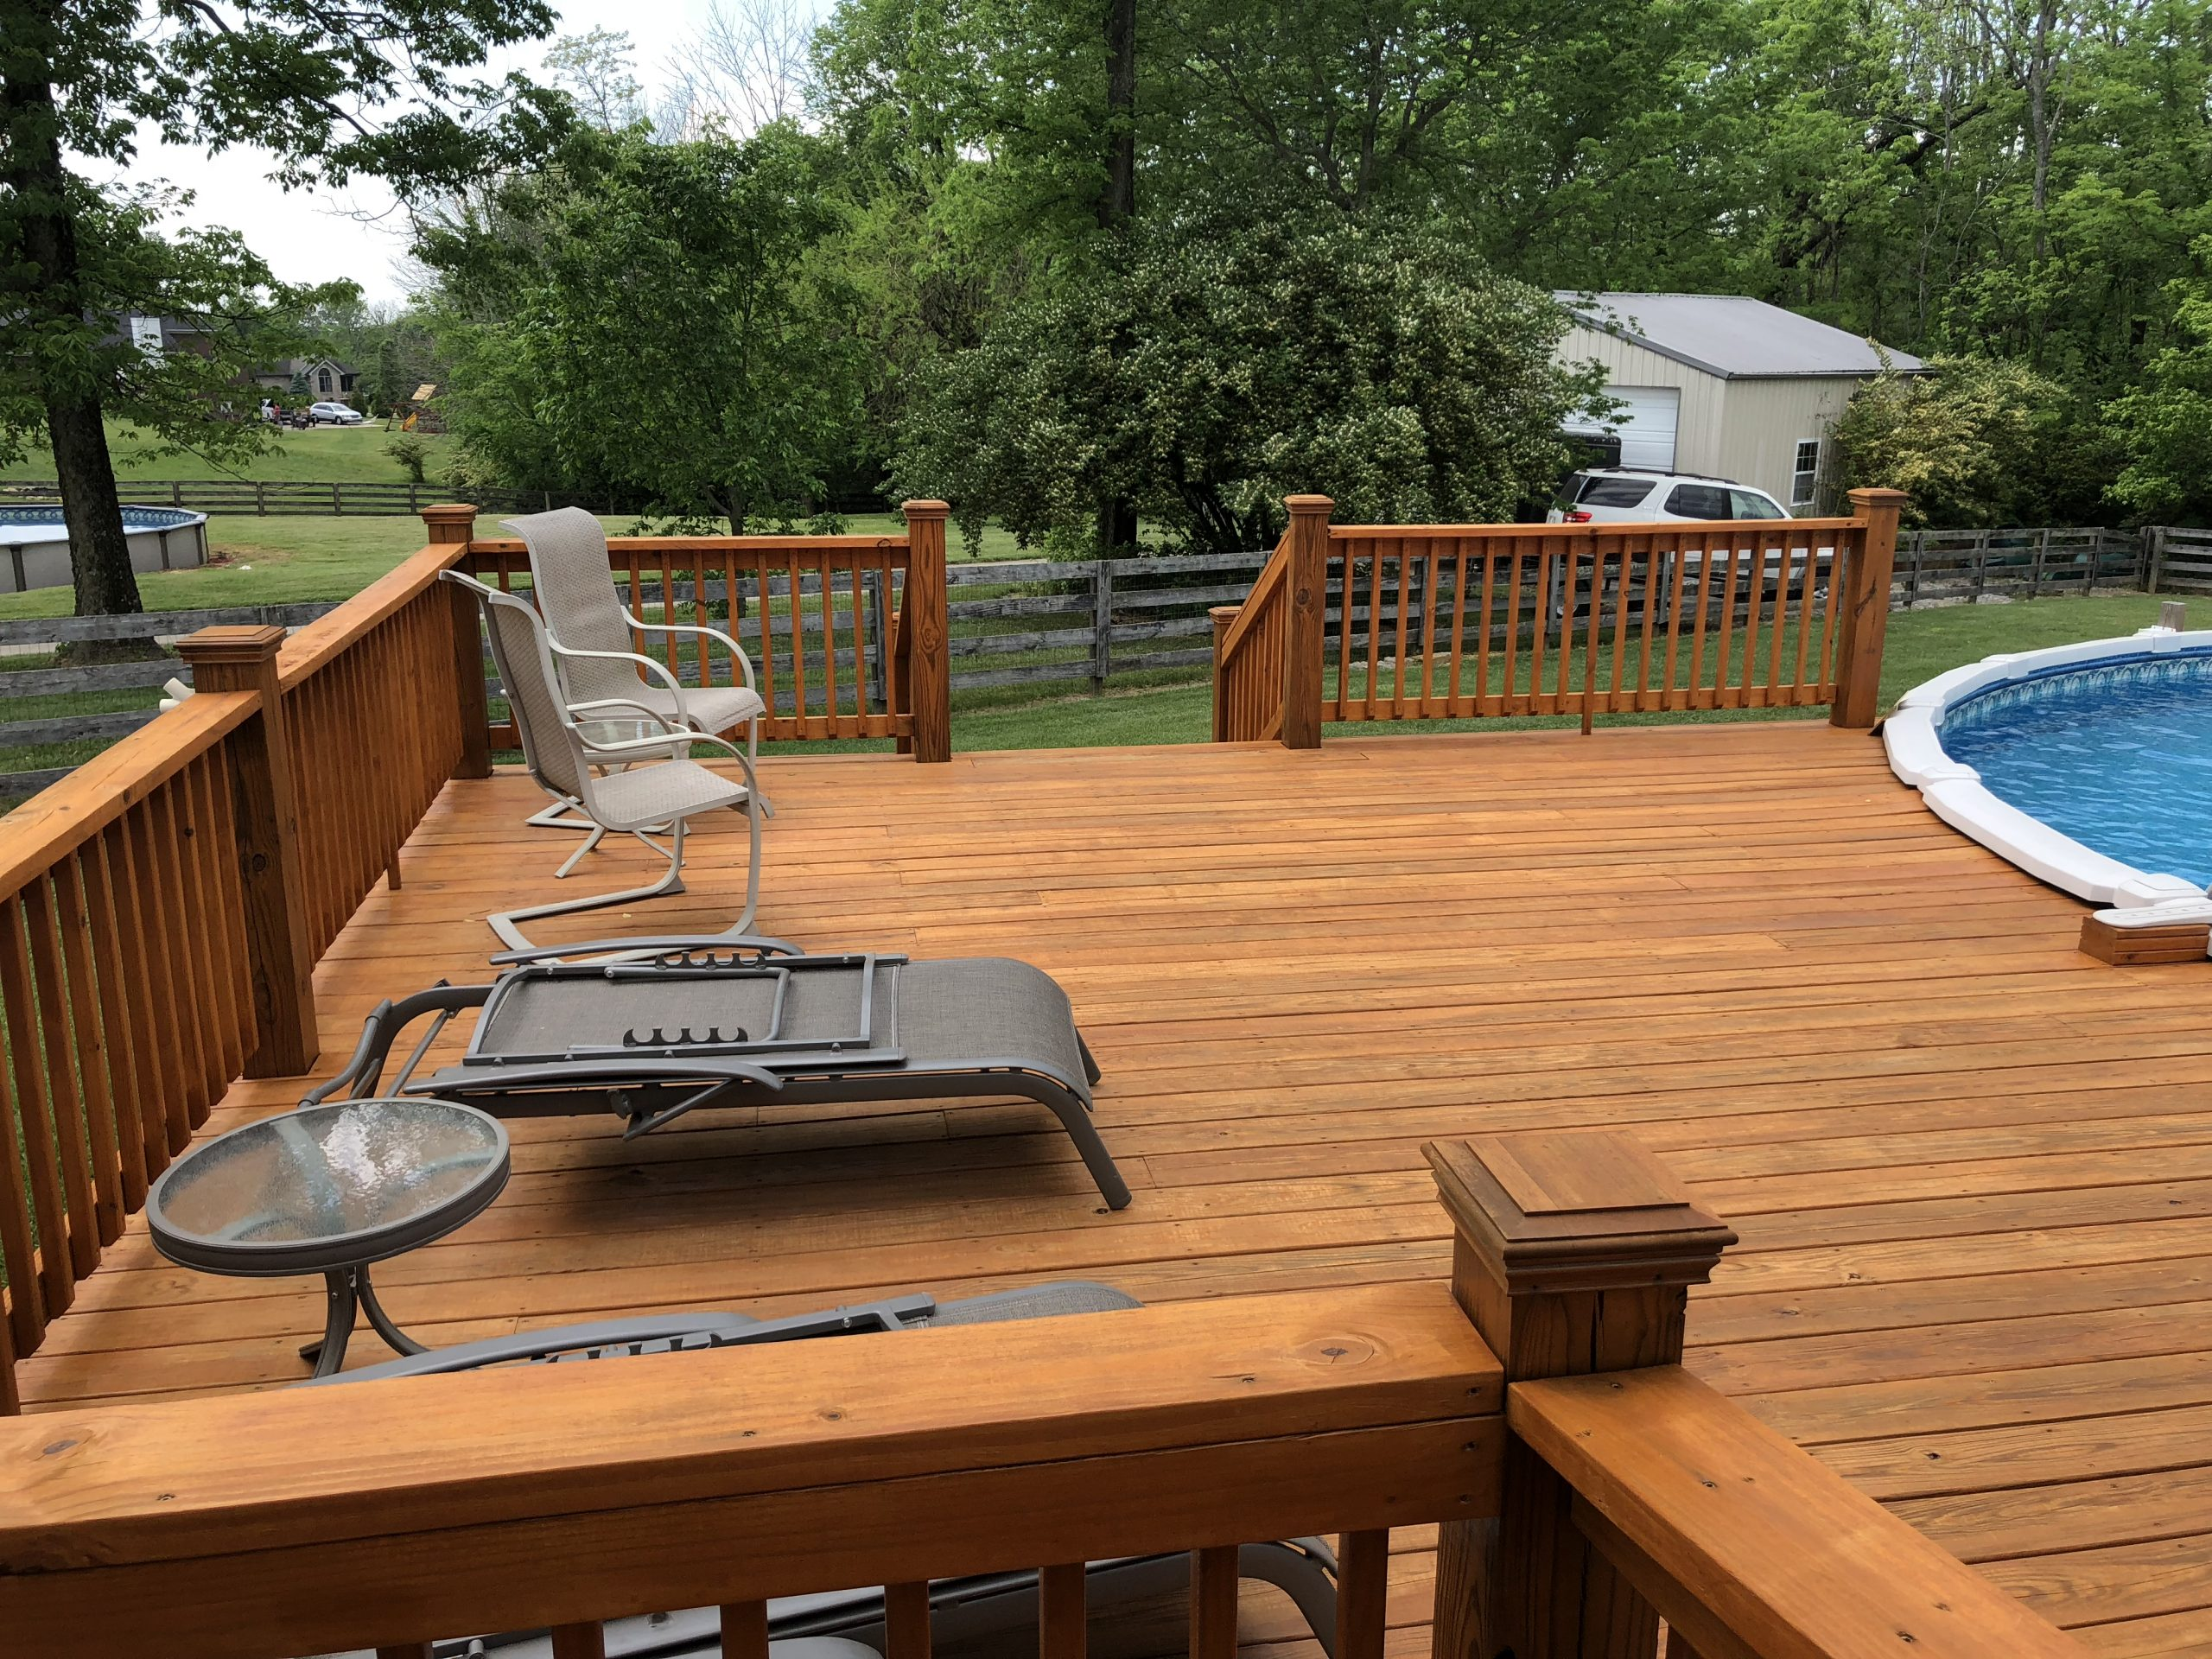 Most Popular Deck Stain Colors 2021 Best Deck Stain Reviews Ratings